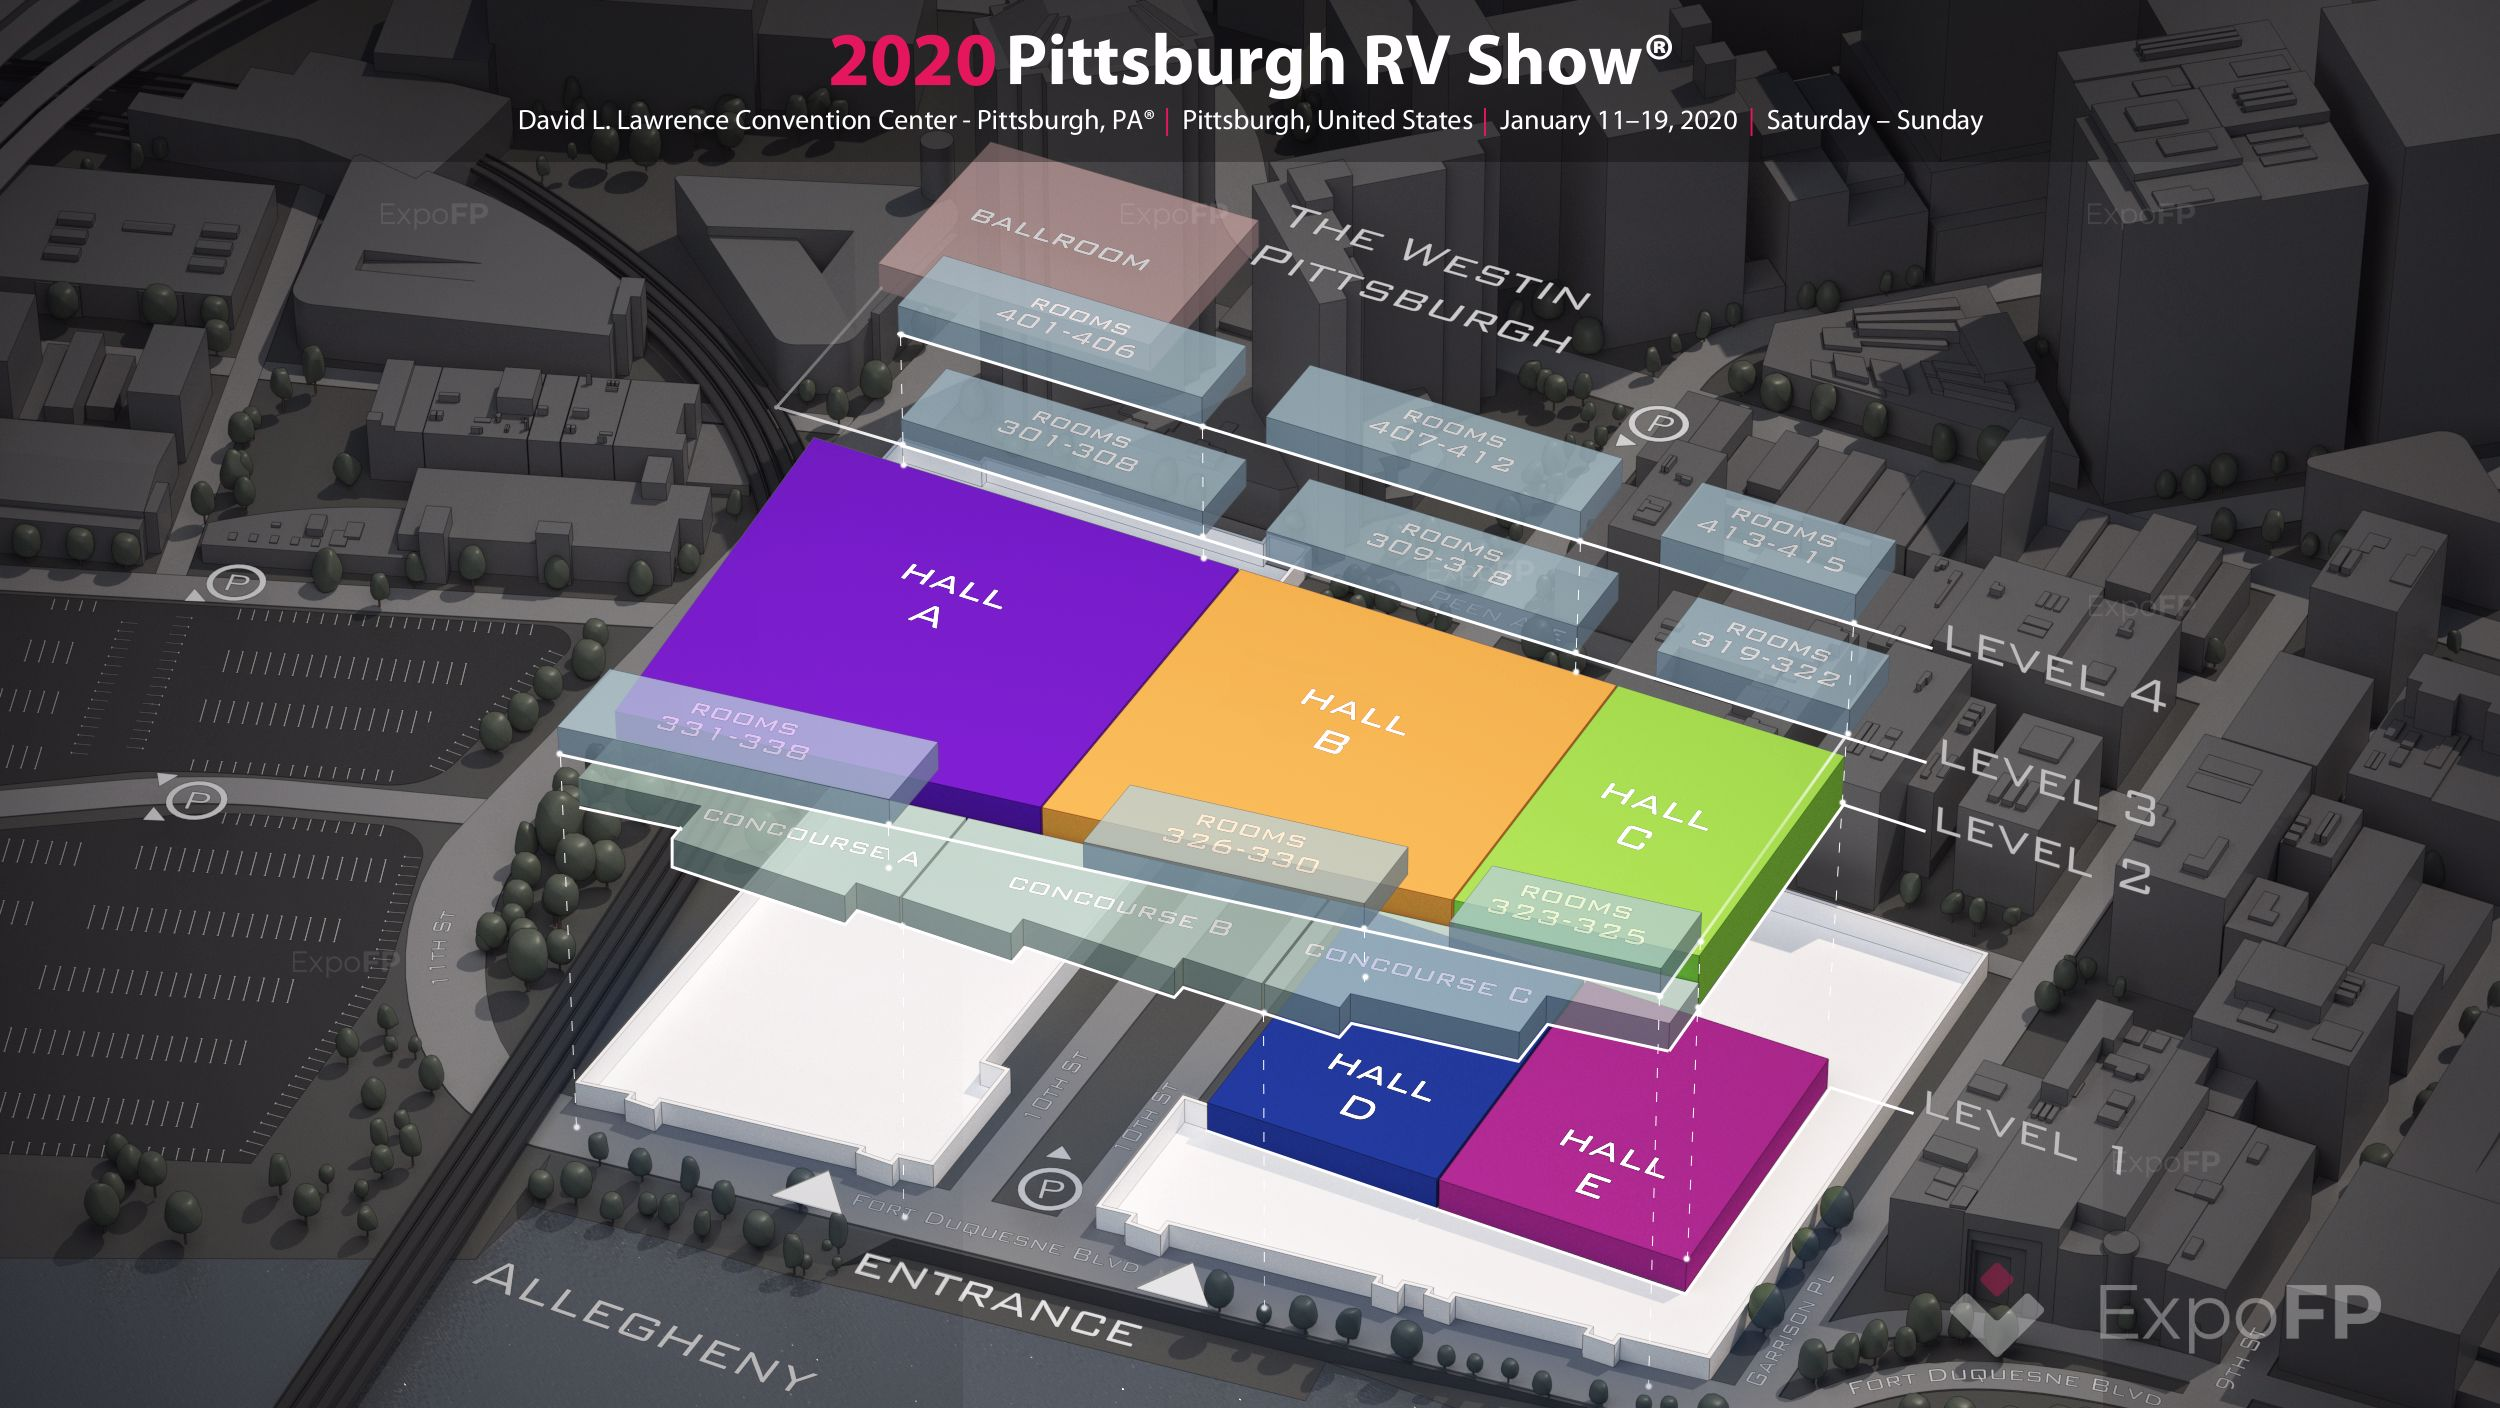 Las Vegas Rv Show 2020.Pittsburgh Rv Show 2020 In David L Lawrence Convention Center